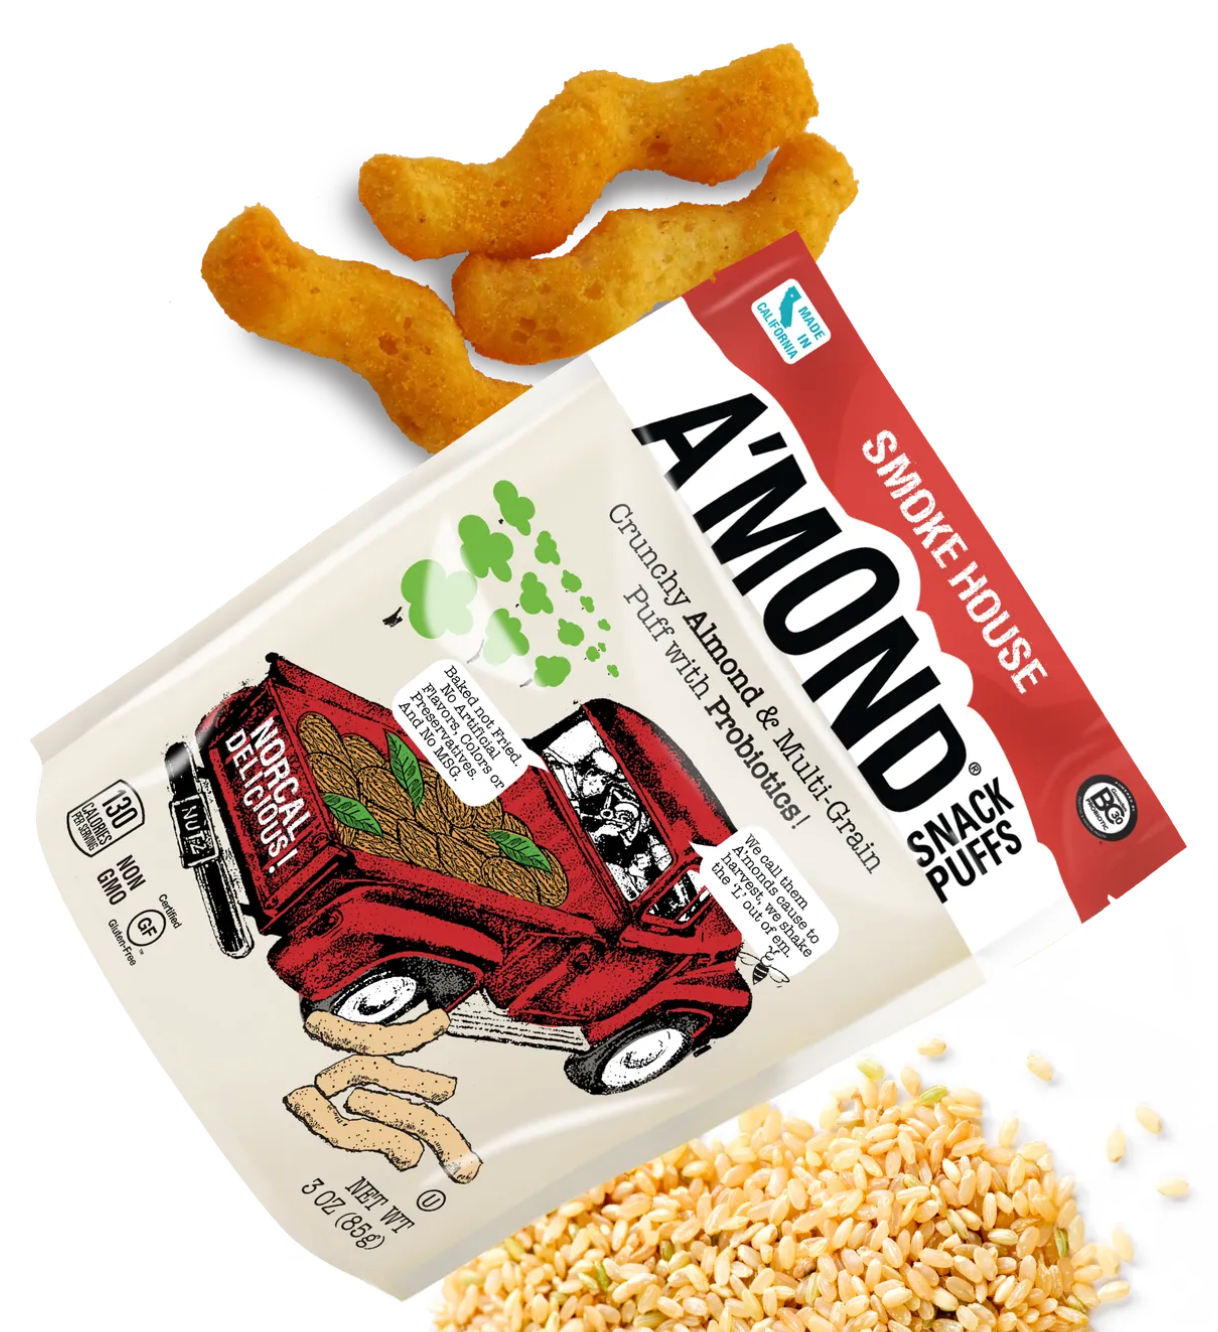 Smokehouse Crunchy Almond Snack with Probiotics by A'mond 85g